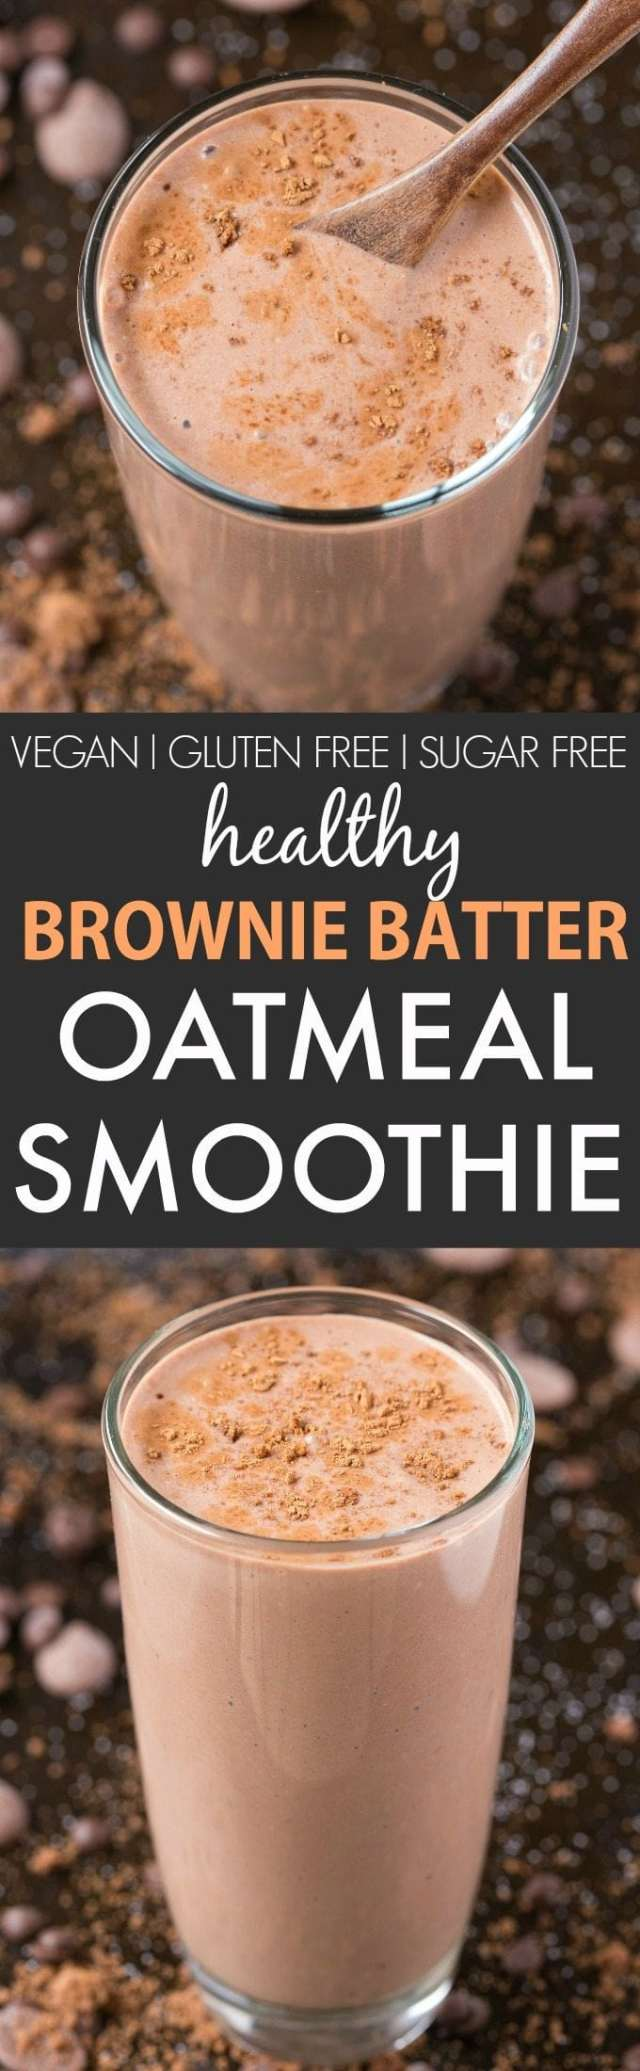 Healthy Brownie Batter Oatmeal Smoothie (V, GF, DF)- Thick, creamy and the taste and texture of real brownie batter, this smoothie is perfect for breakfast, snacks or even a post workout shake! {vegan, gluten free, sugar free recipe}- thebigmansworld.com